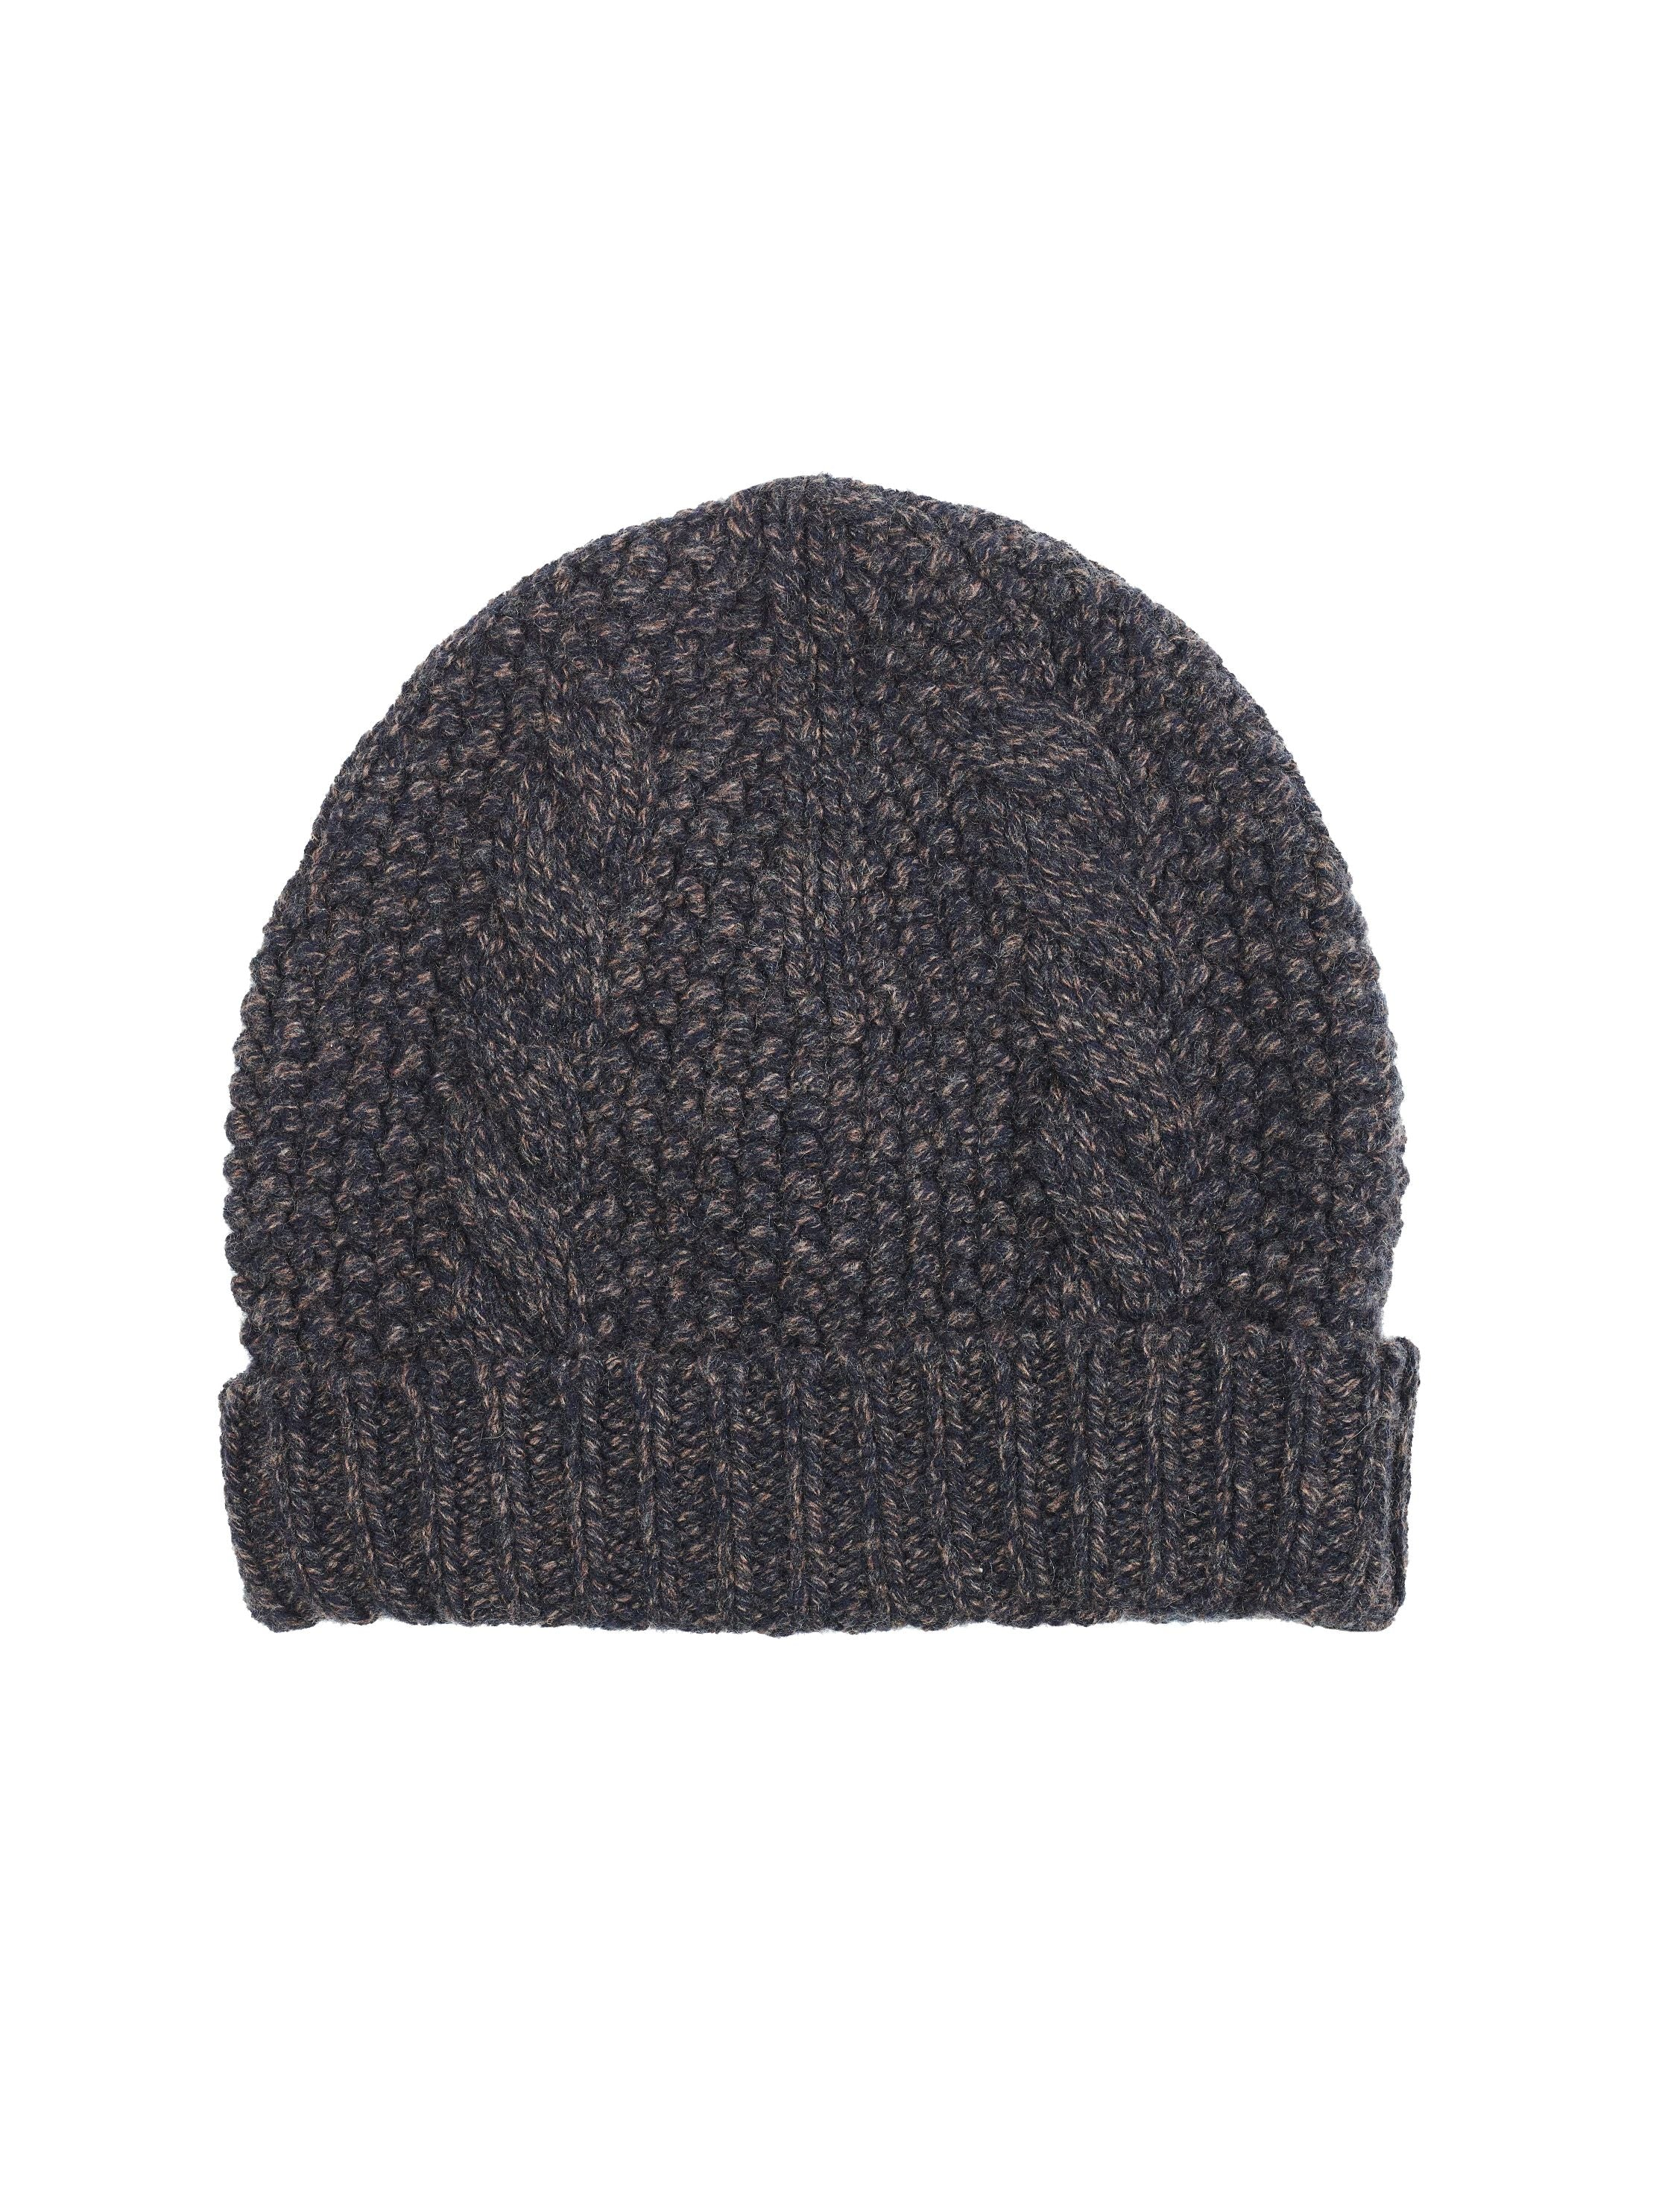 Separate cables emanate from the top of the hat to the brim